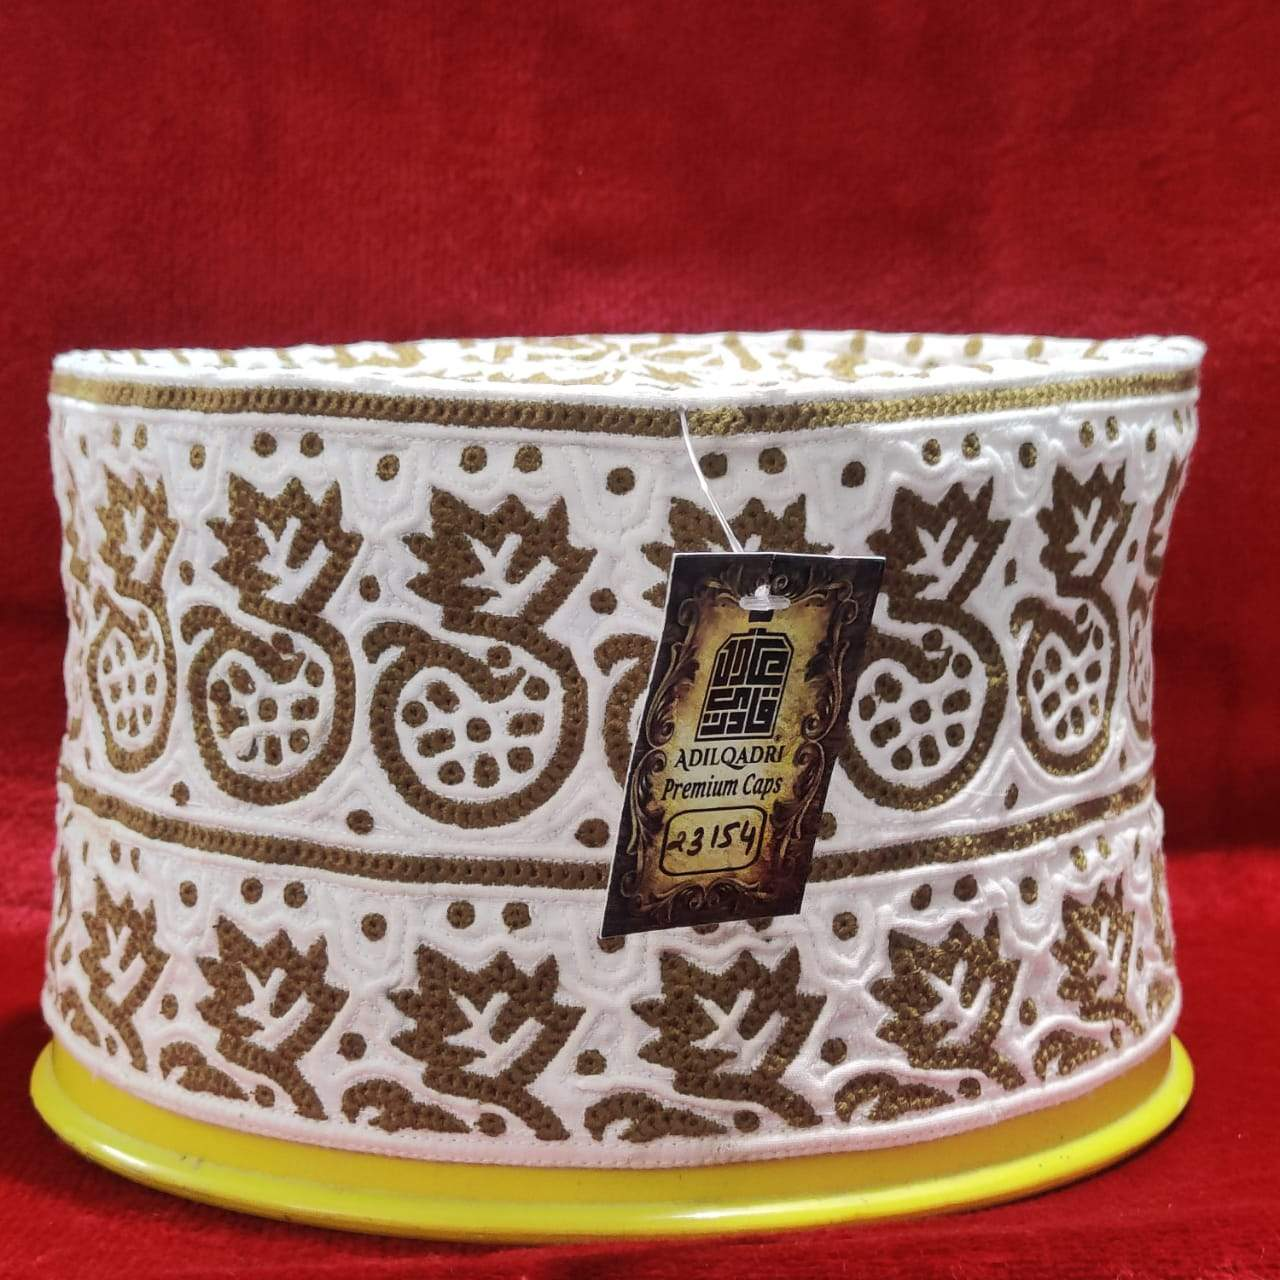 Adilqadri New Original Omani Barkati Cap Soft Cotton Material Model No 23154 Size 23 (Barkati Topi)